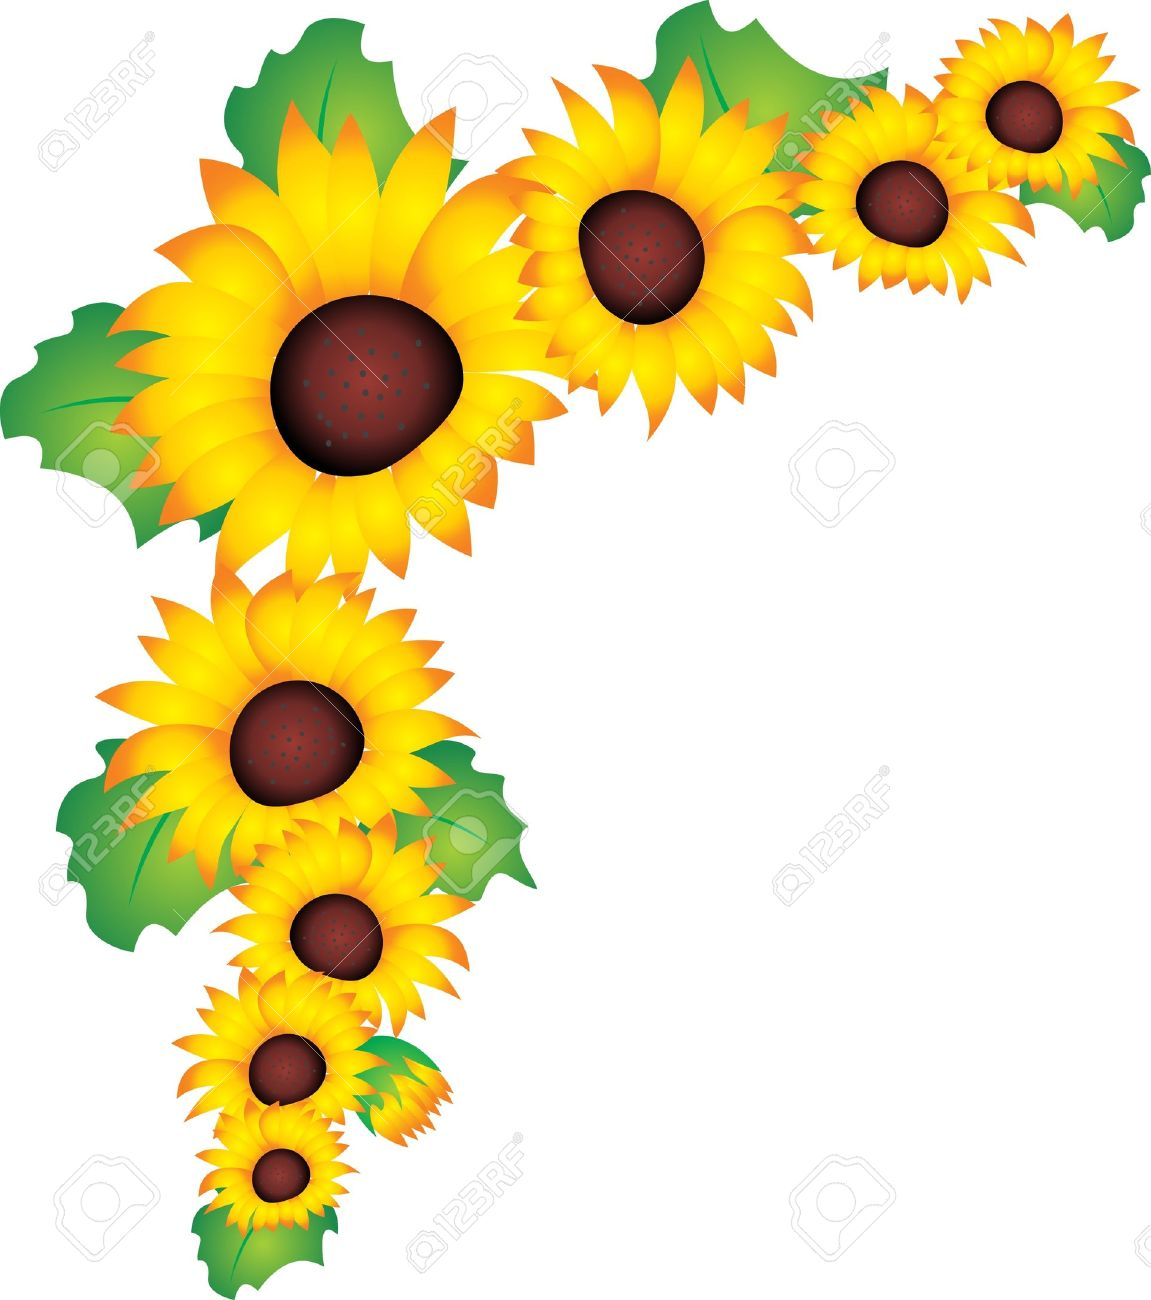 Vector clipart sunflower pencil and in color jpg.